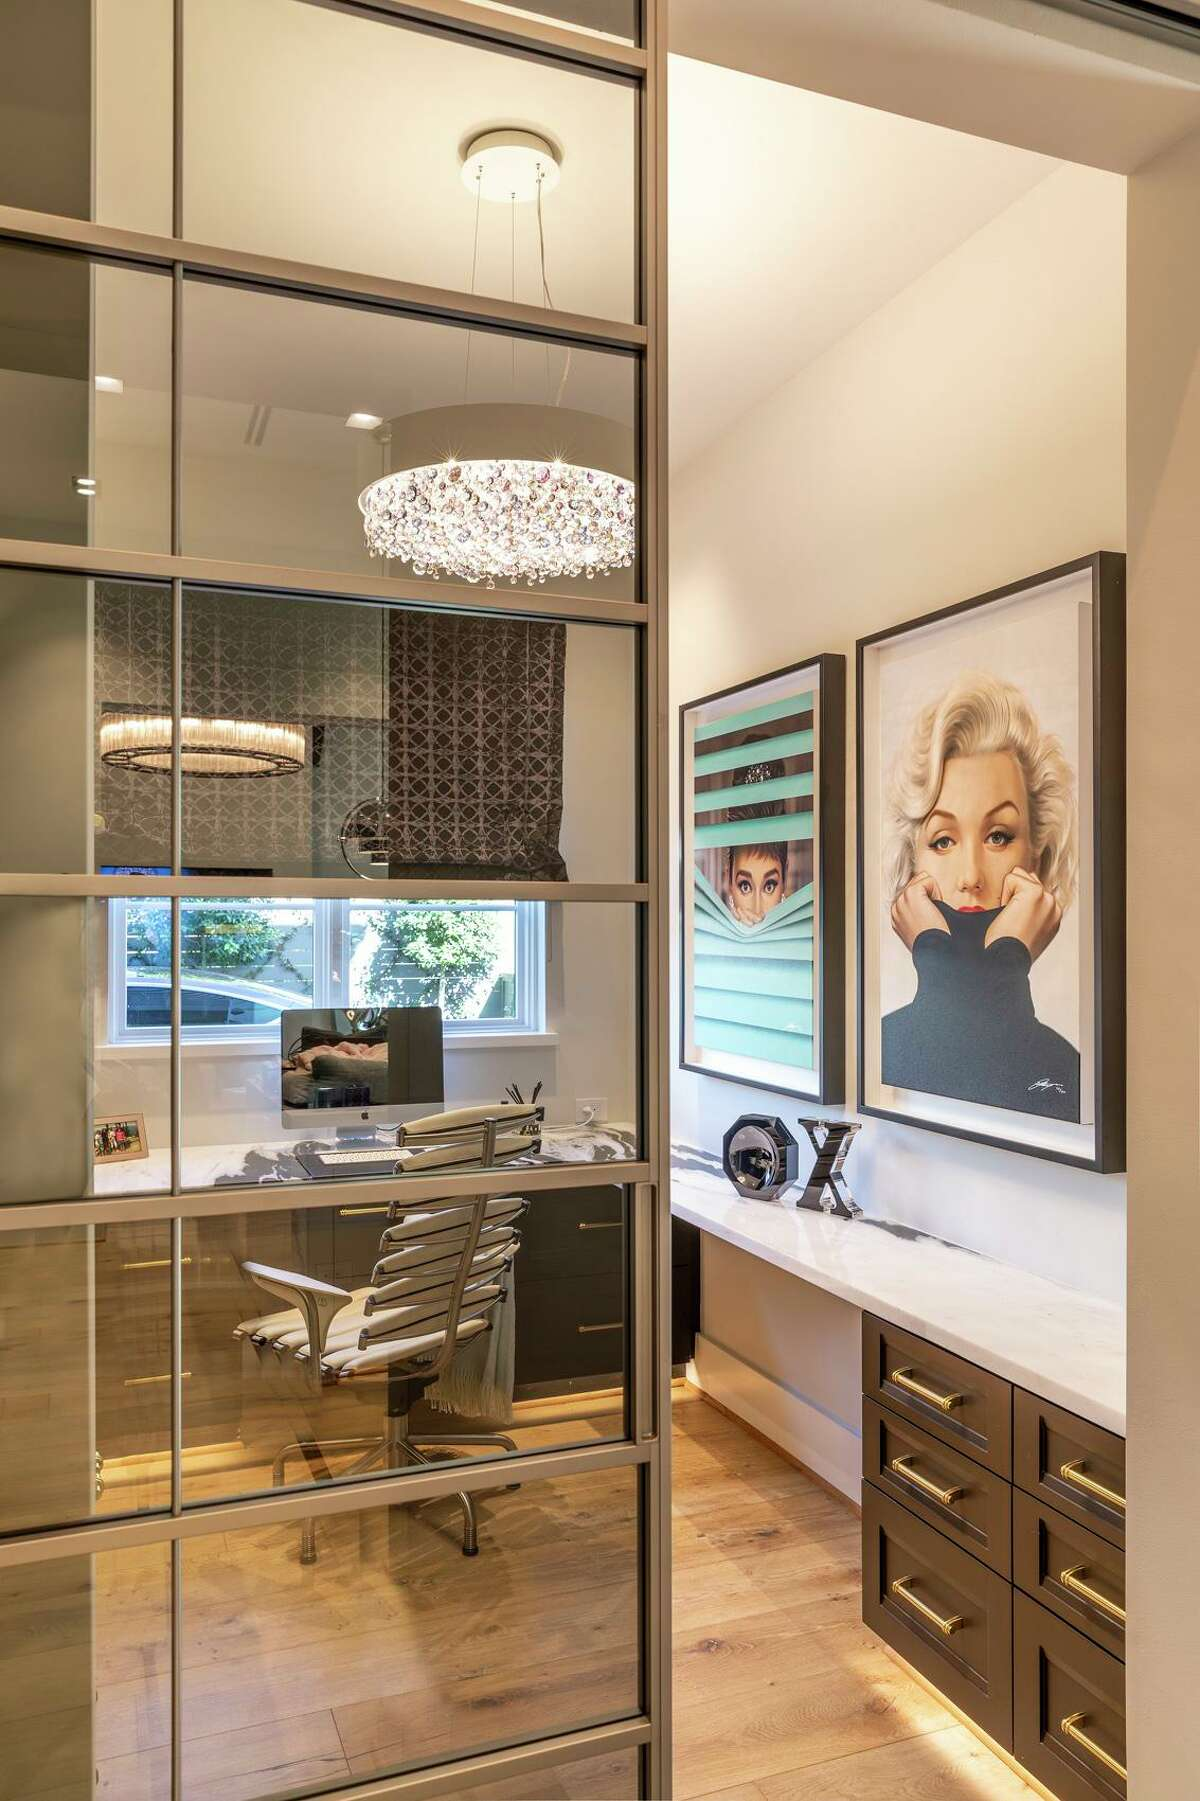 April Palafox has her own office, with Audrey Hepburn and Marilyn Monroe portraits by artist Michael Moebius.